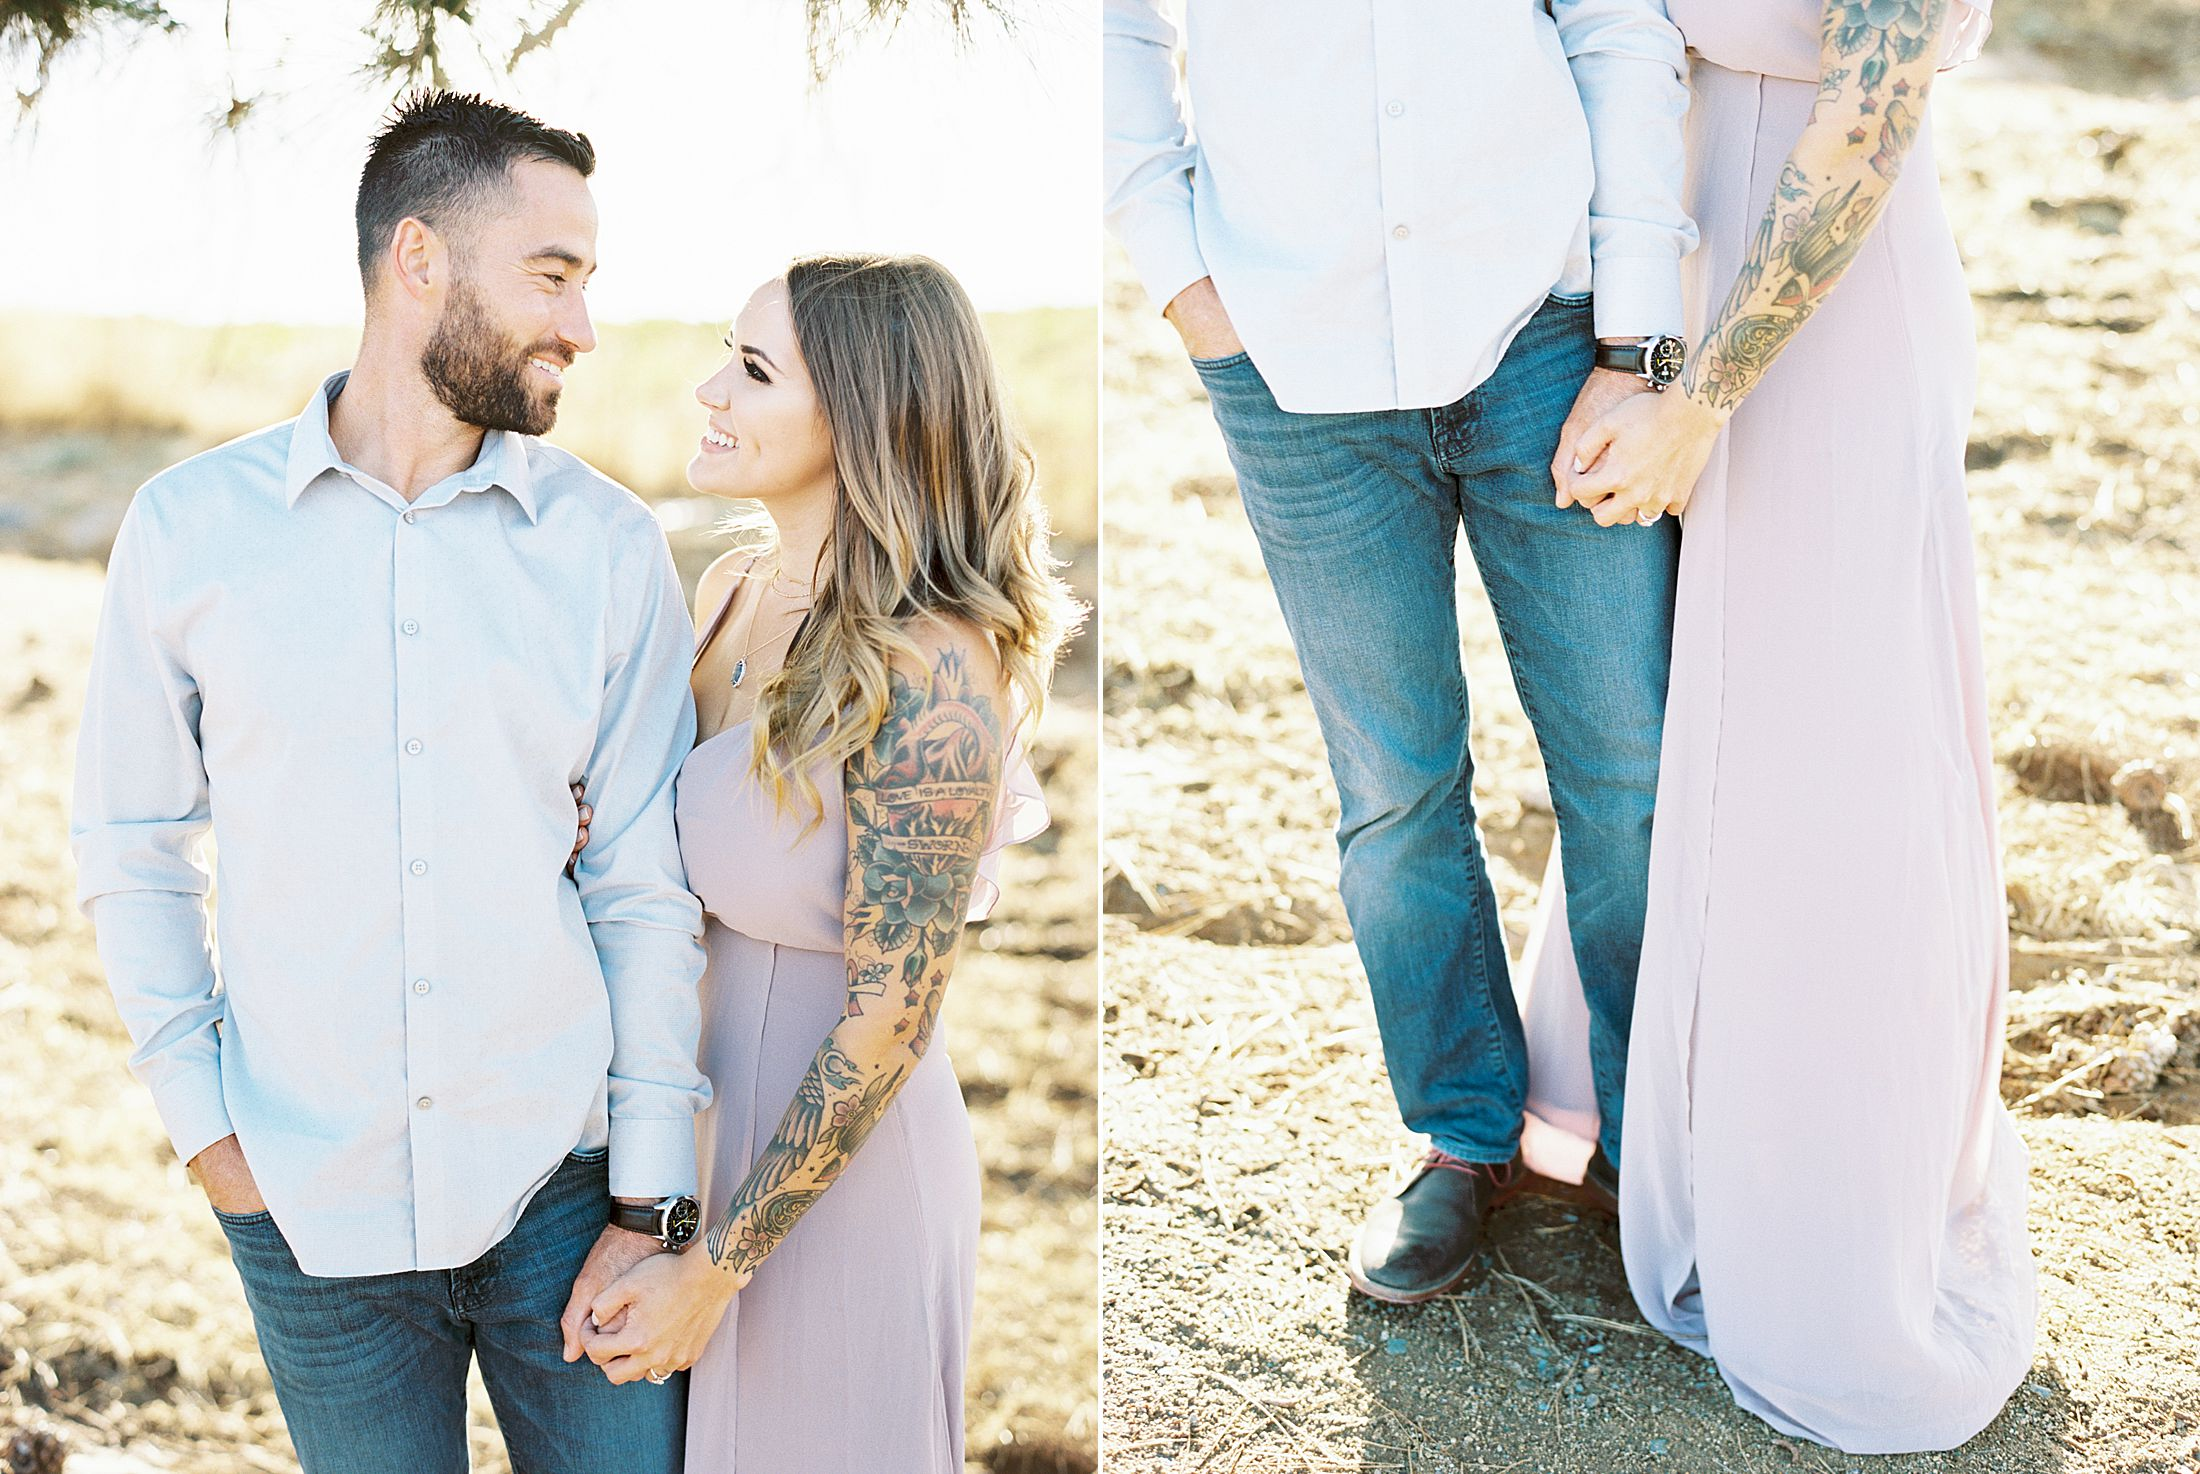 Helwig Winery Engagement Session - Steffanie and Rich - Jenn Robirds Events - Ashley Baumgartner - Sacramento Wedding Photographer - Private Estate Wedding Photographer - Helwig WInery Wedding_0075.jpg